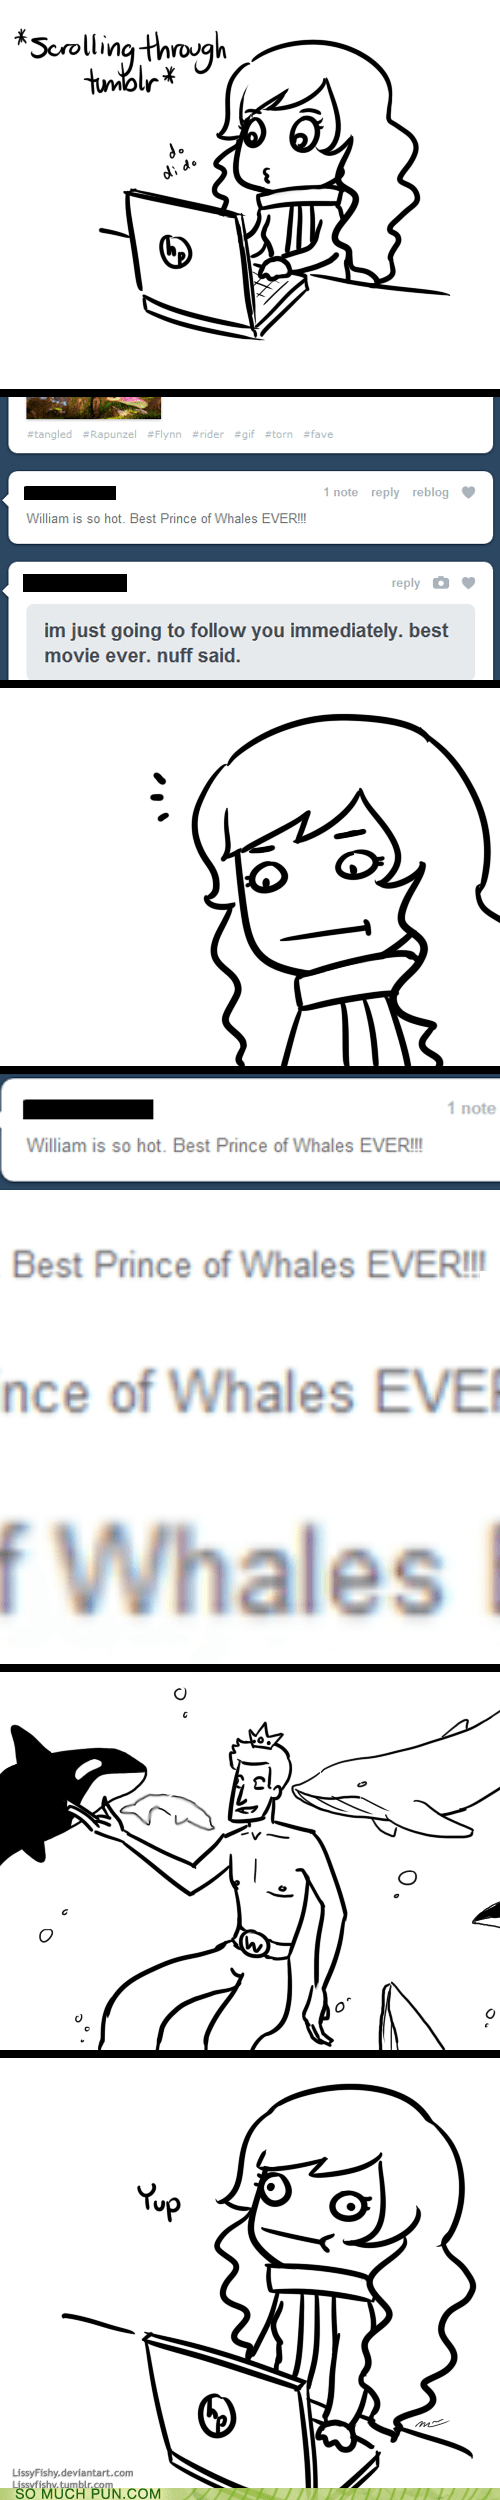 added letter,double meaning,literalism,misspelling,prince,royal family,tumblr,Wales,whales,william